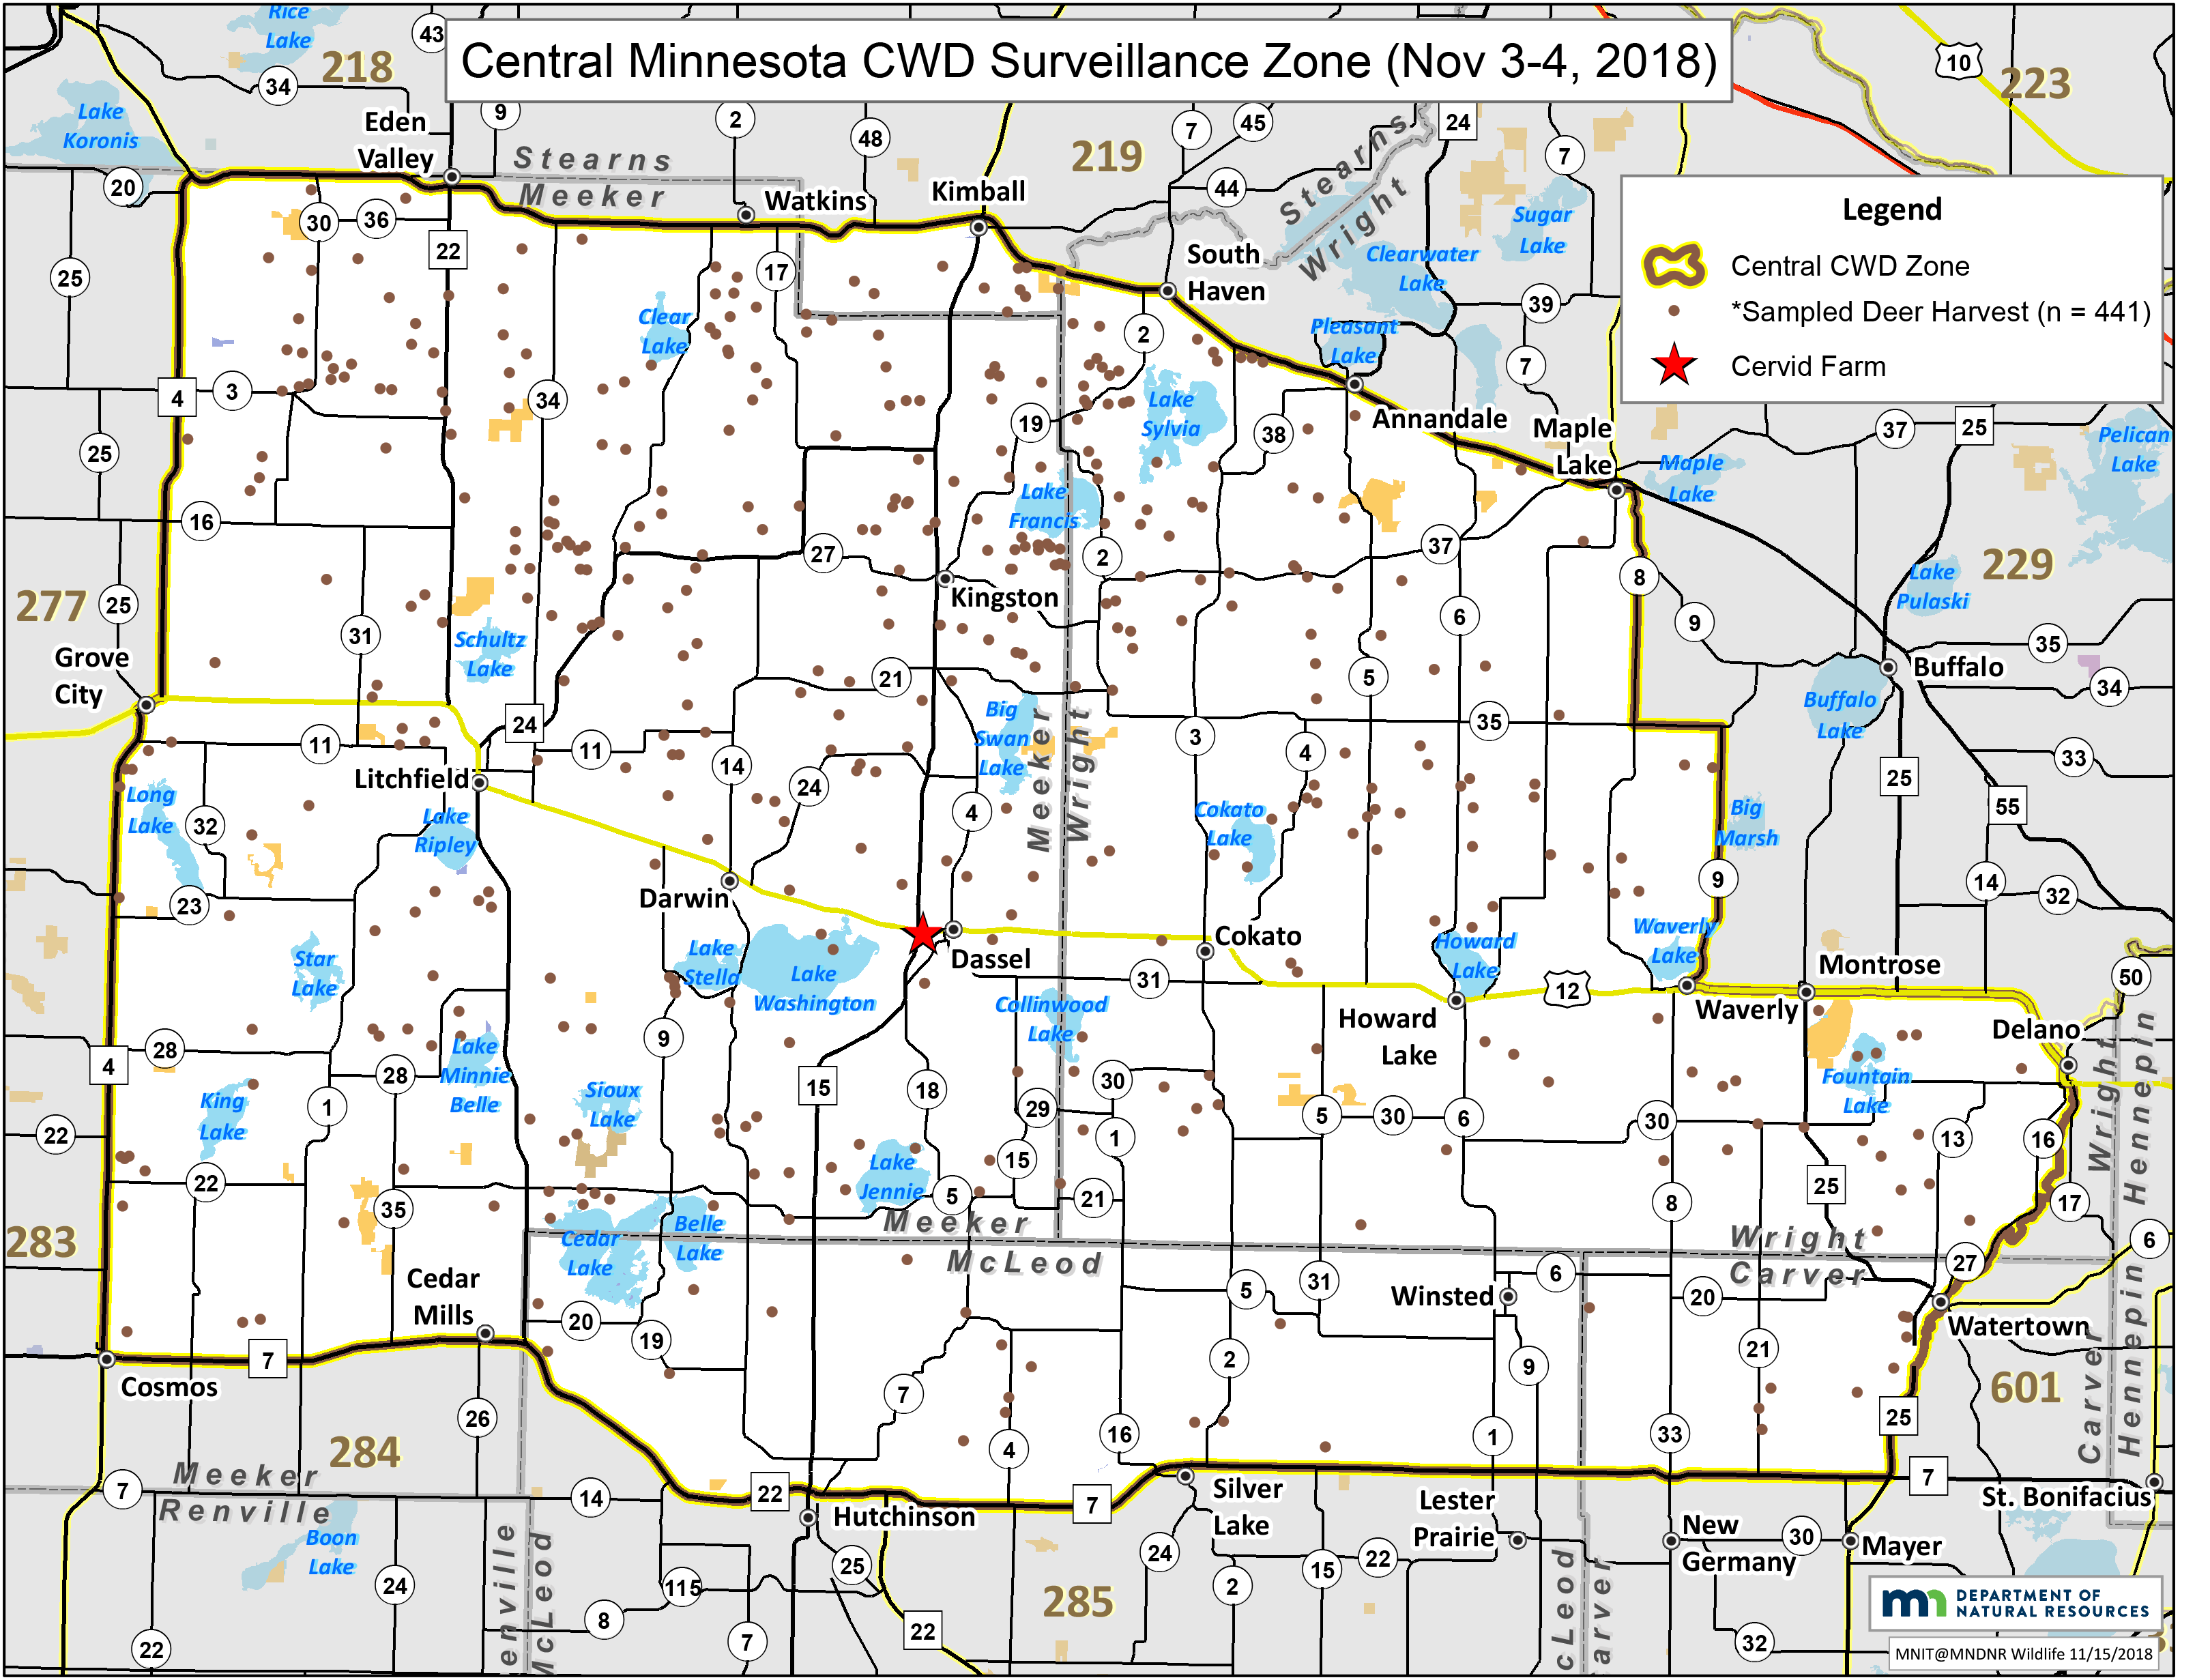 Map showing CWD positives in Minnesota.